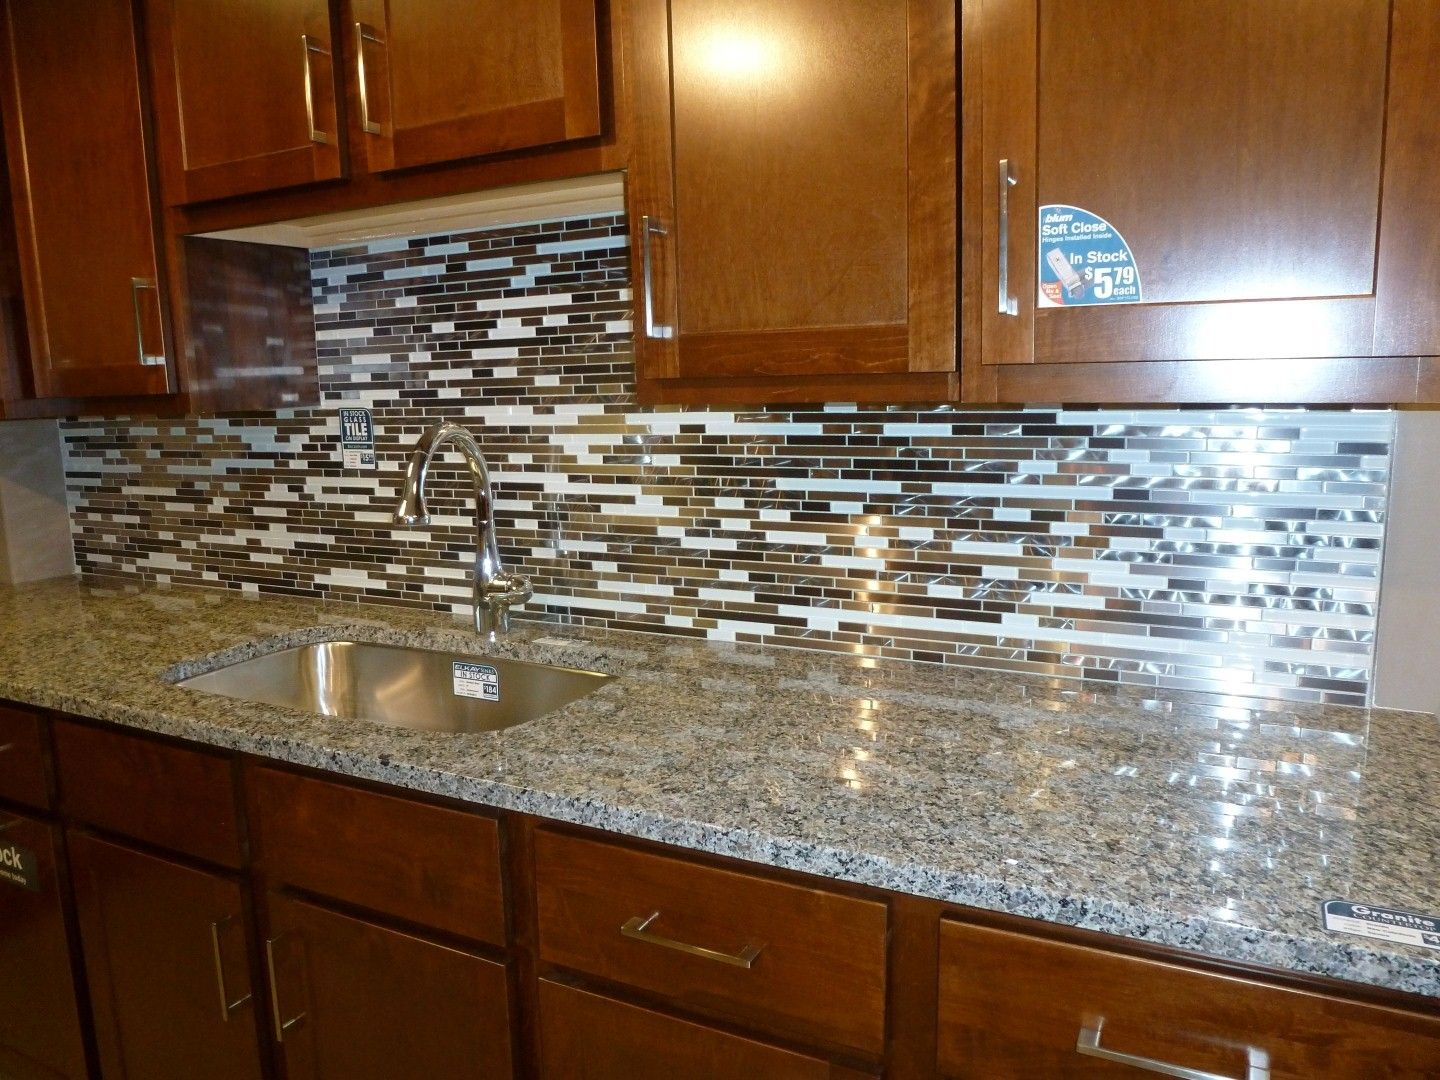 tilebacksplash / glass tile kitchen backsplash photos - http://goo